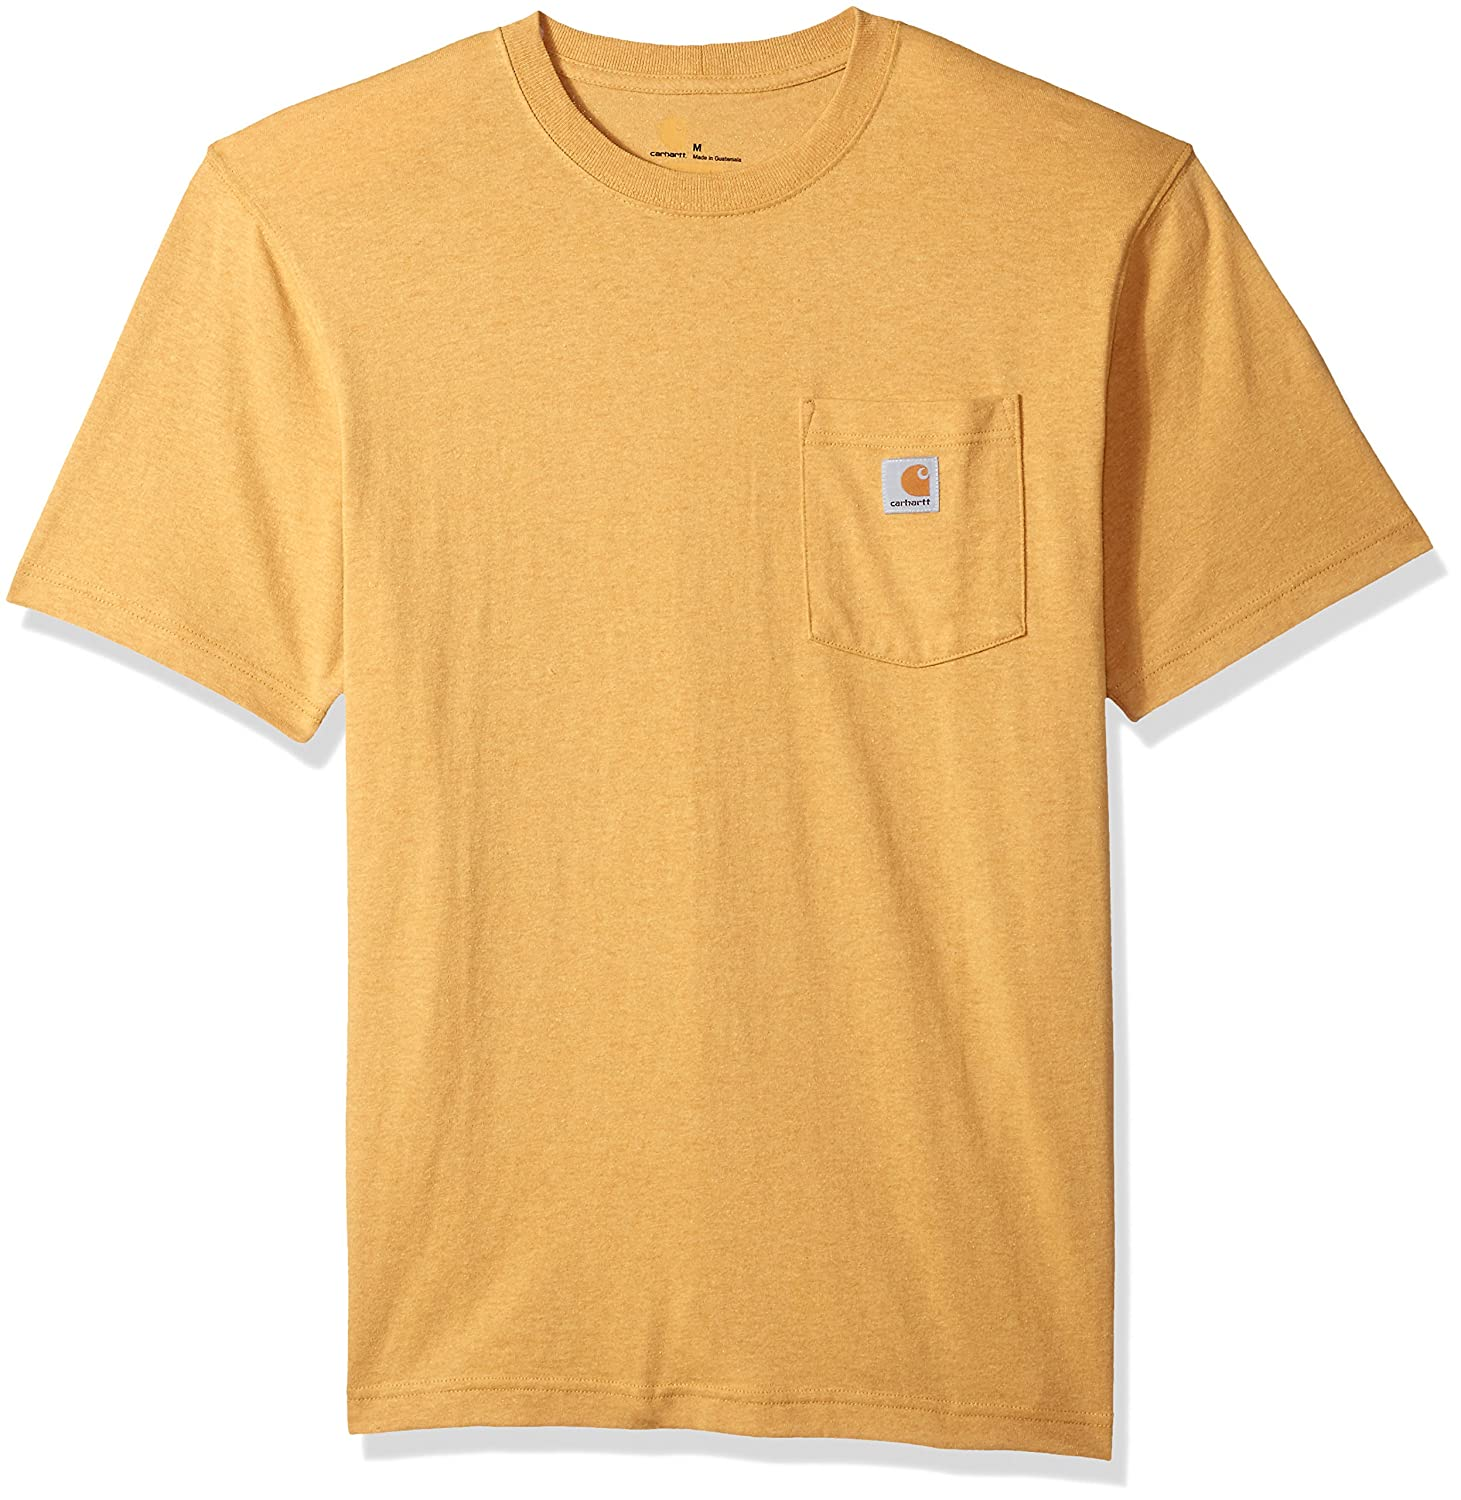 Carhartt SHIRT メンズ B075LZ9J3F Medium|Carhartt Gold Heather Carhartt Gold Heather Medium